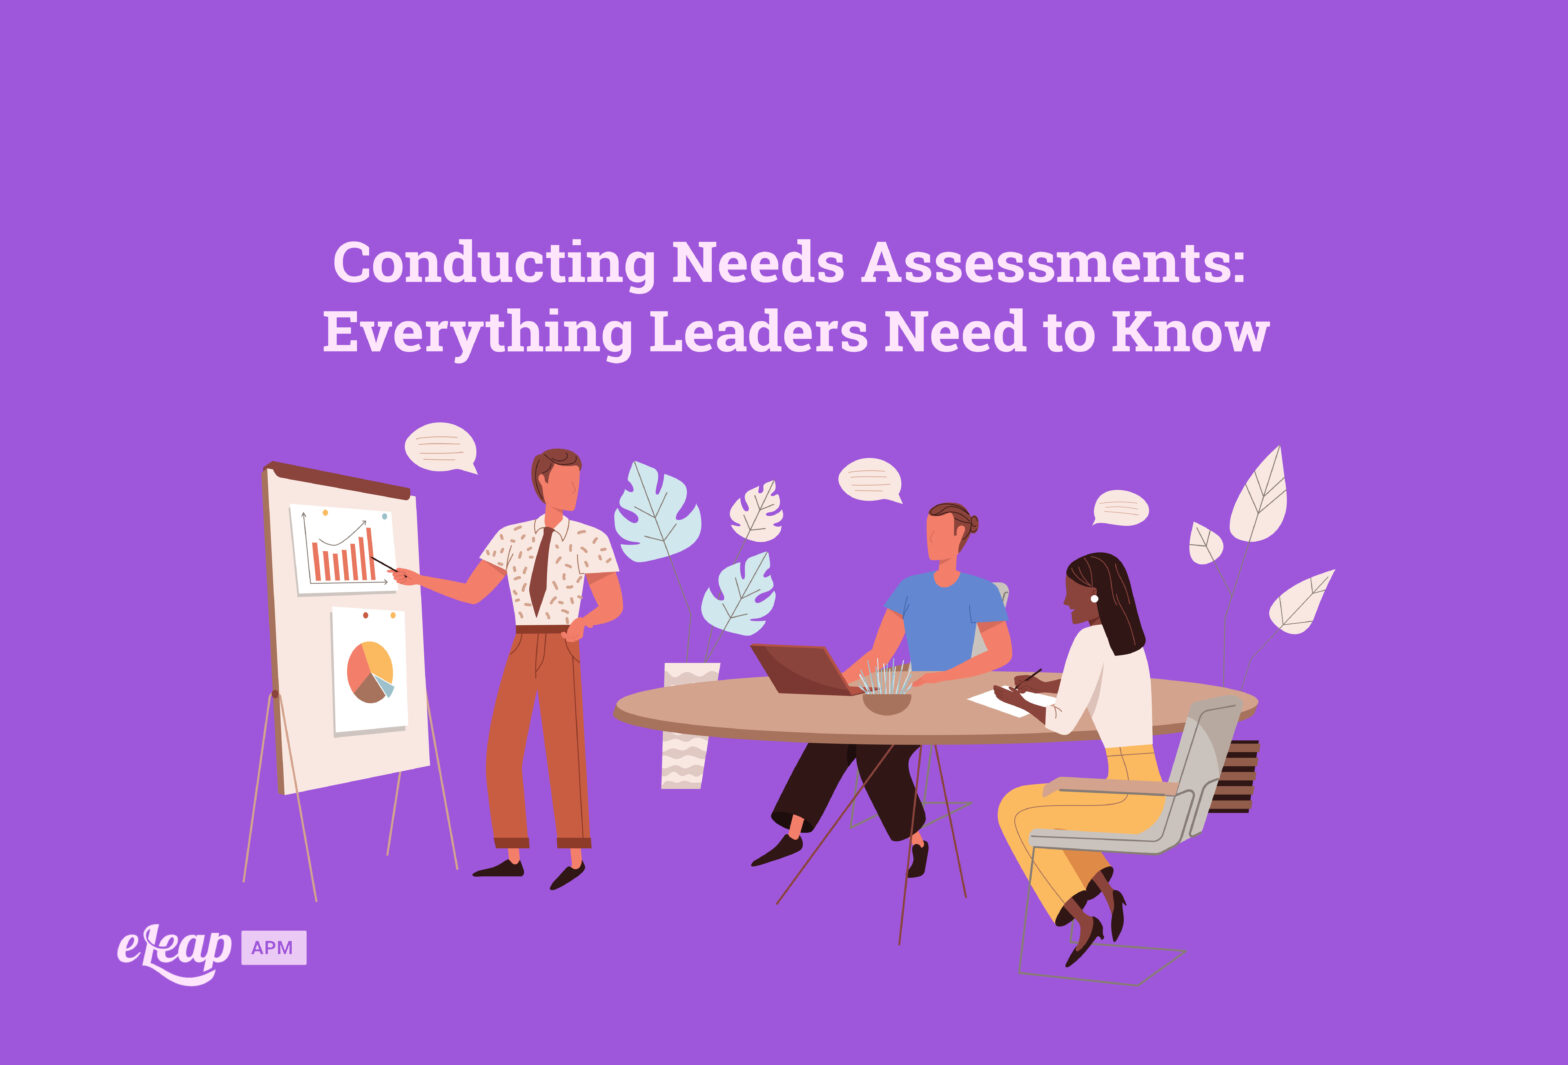 Conducting Needs Assessments: Everything Leaders Need to Know